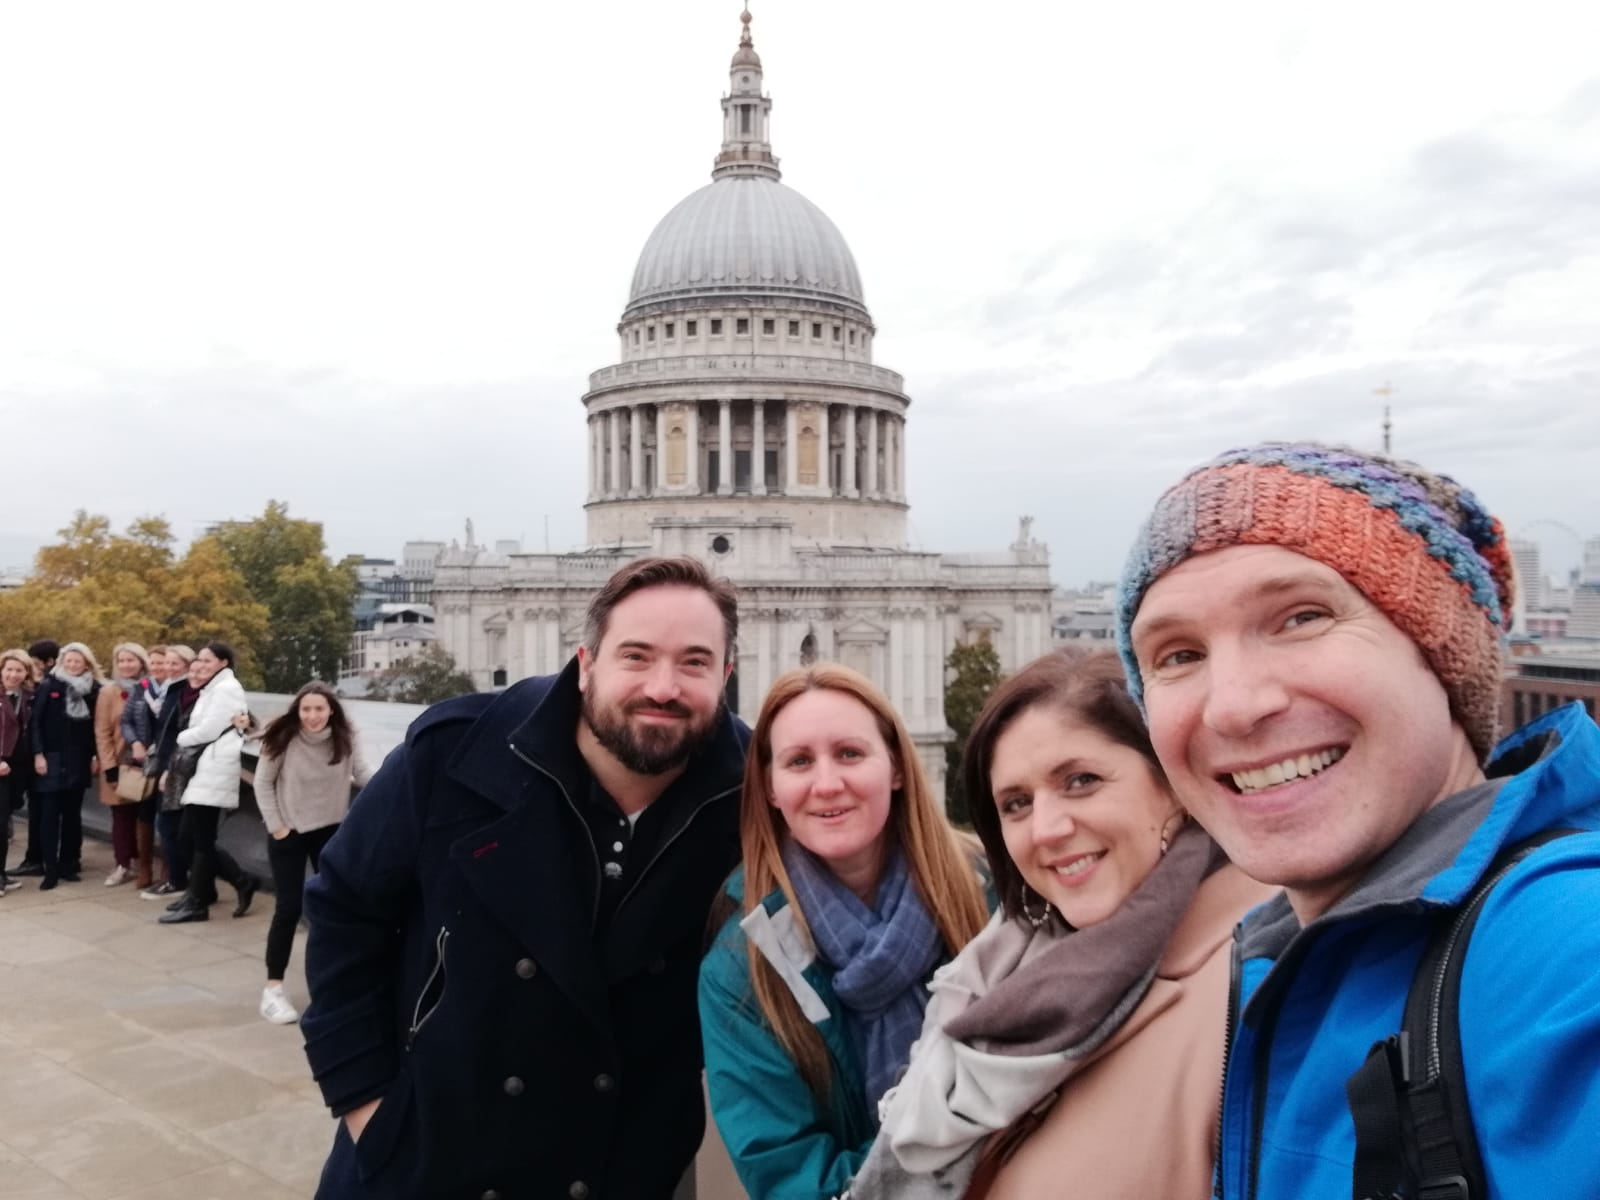 Us with friends overlooking St Paul's Cathedral, London